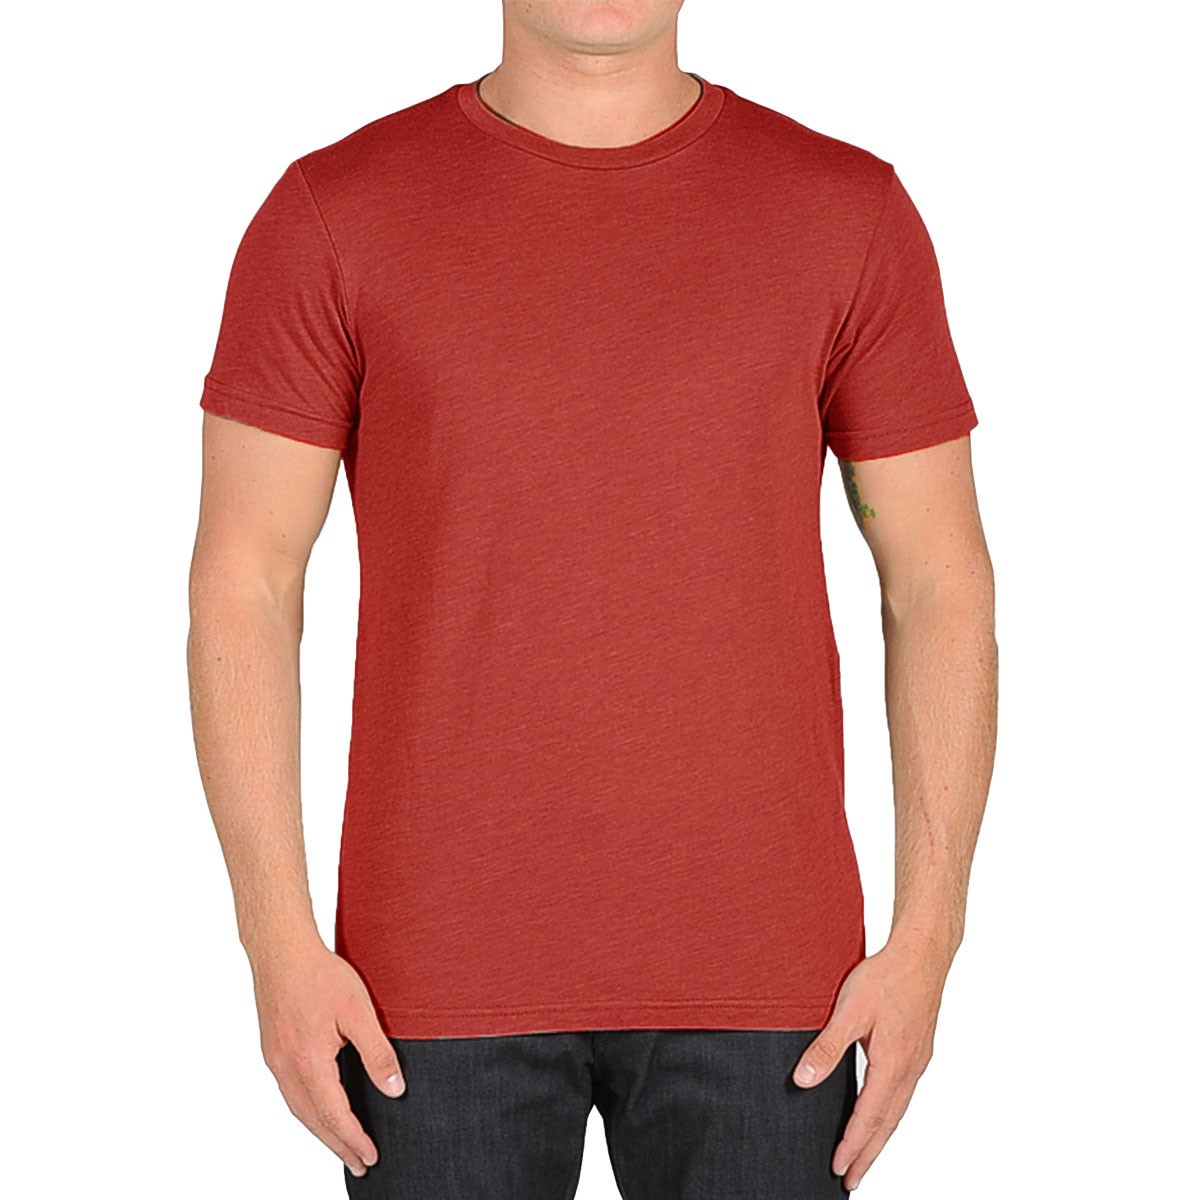 Volcom Heather Solid T-Shirt - Burgundy Heather